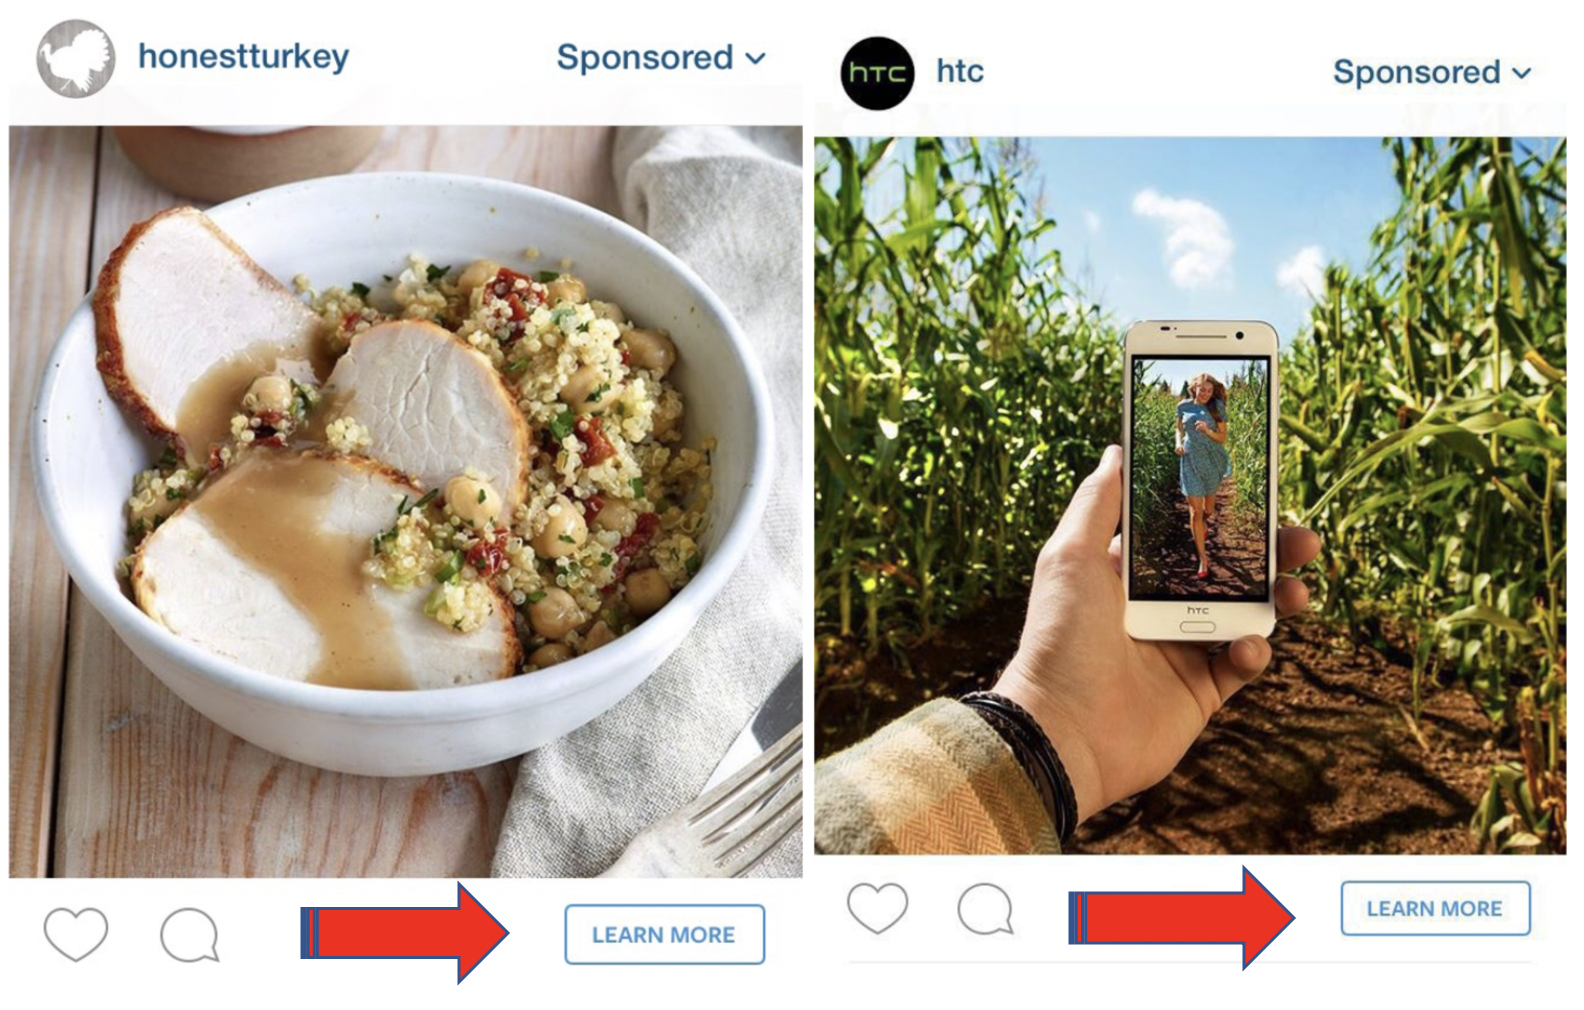 Instagram CTA on Ads - Learn More